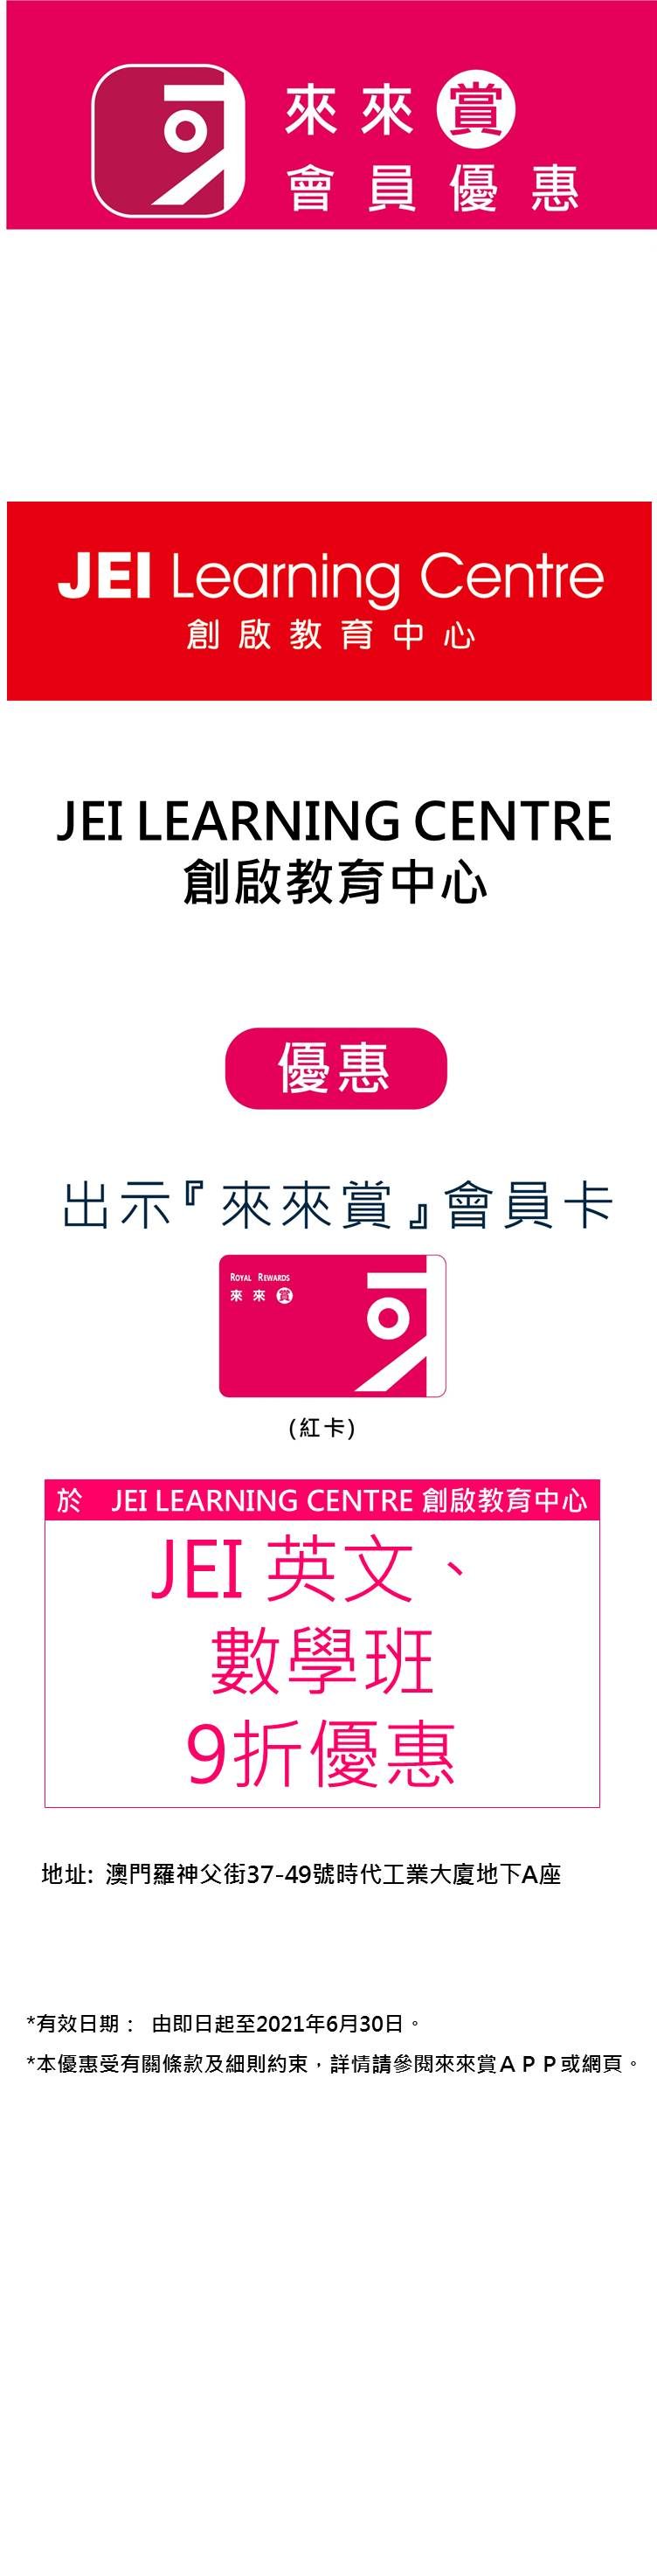 22.JEI LEARNING.jpg